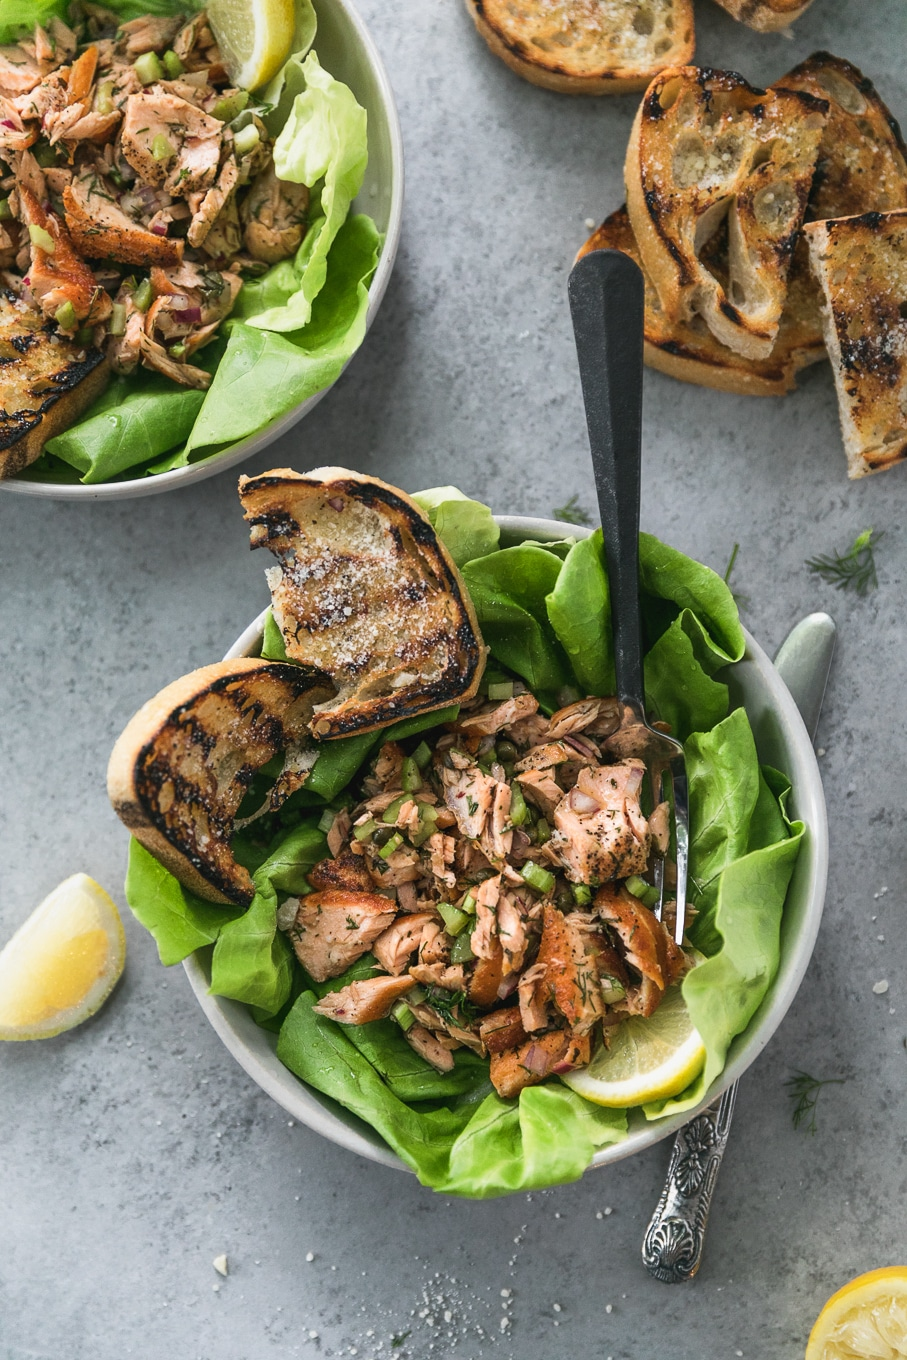 Overhead shot of two bowls filled with butter lettuce, flaked salmon and grilled garlic bread, with a lemon wedge and more slices of grilled garlic bread off to the side